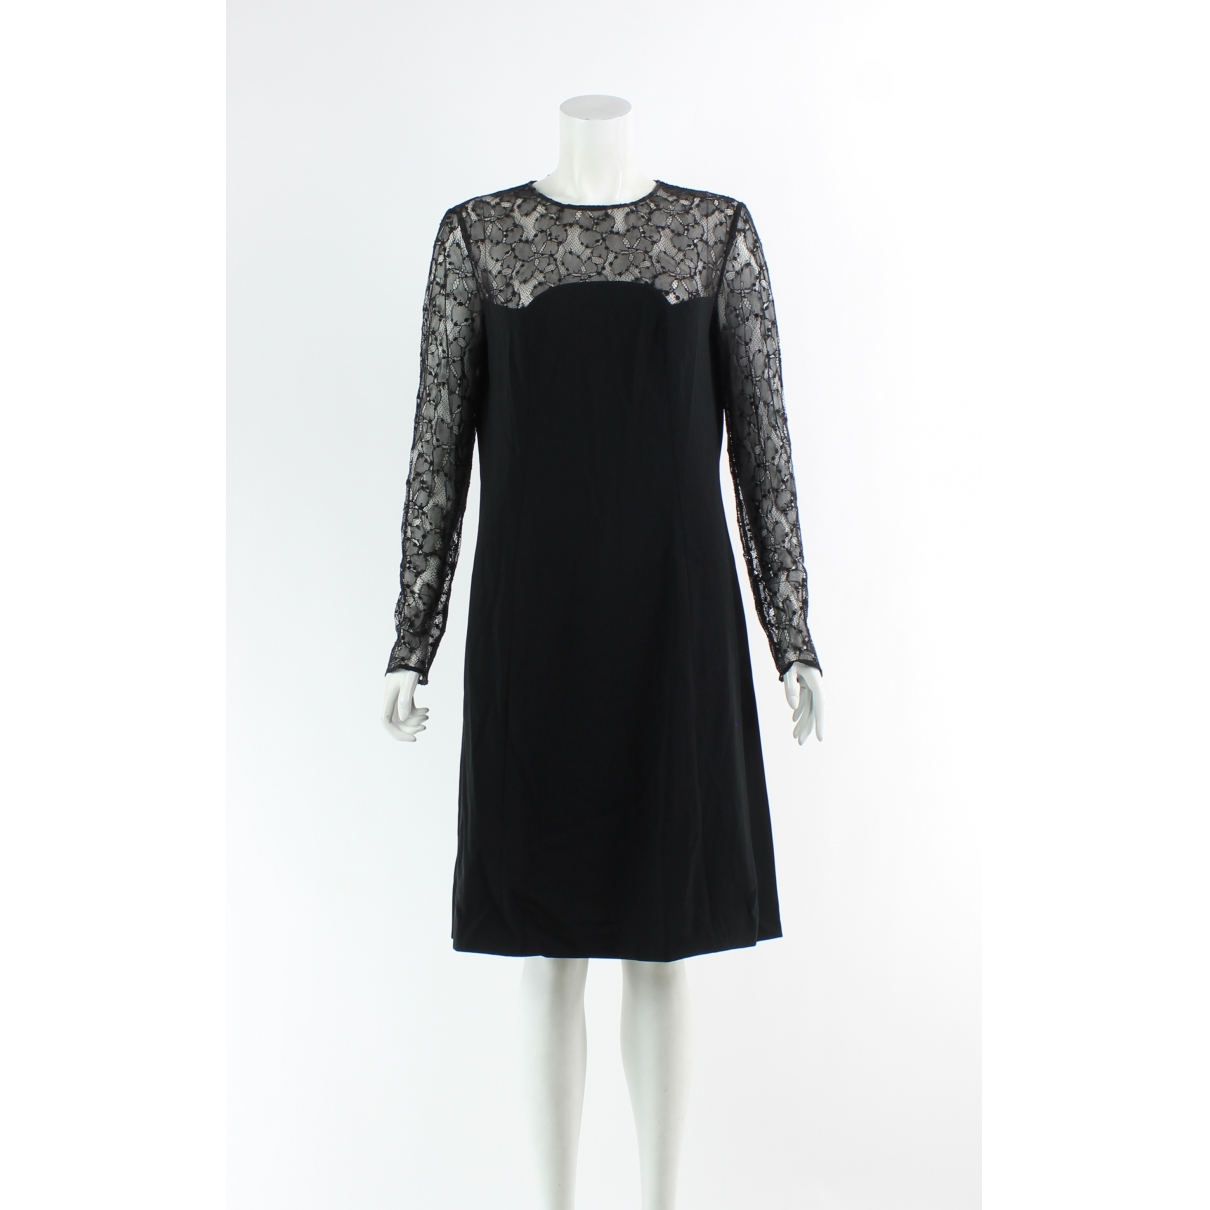 Moschino Cheap And Chic \N Black dress for Women 44 IT